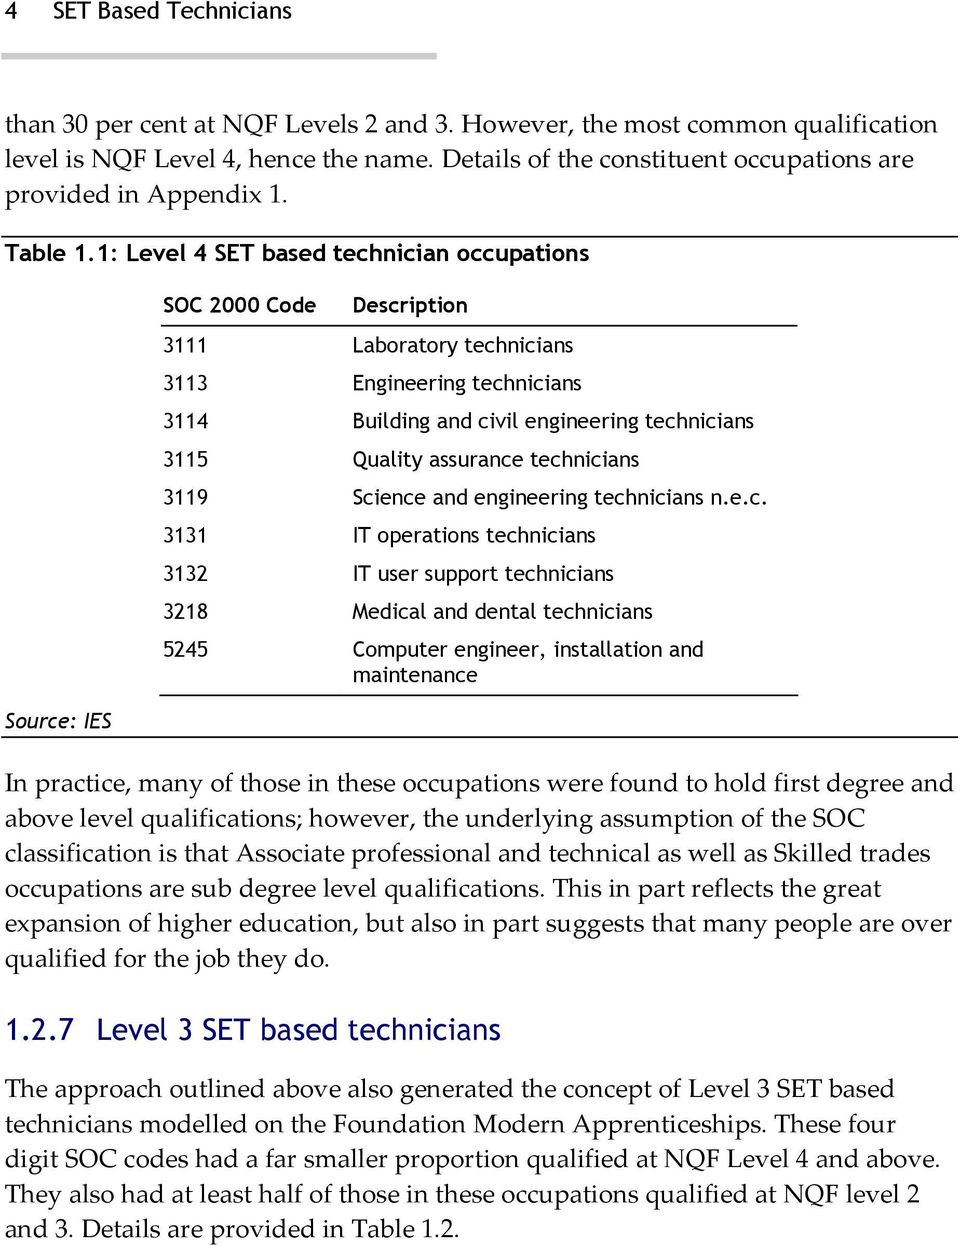 1: Level 4 SET based technician occupations Source: IES SOC 2000 Code Description 3111 Laboratory 3113 Engineering 3114 Building and civil engineering 3115 Quality assurance 3119 Science and